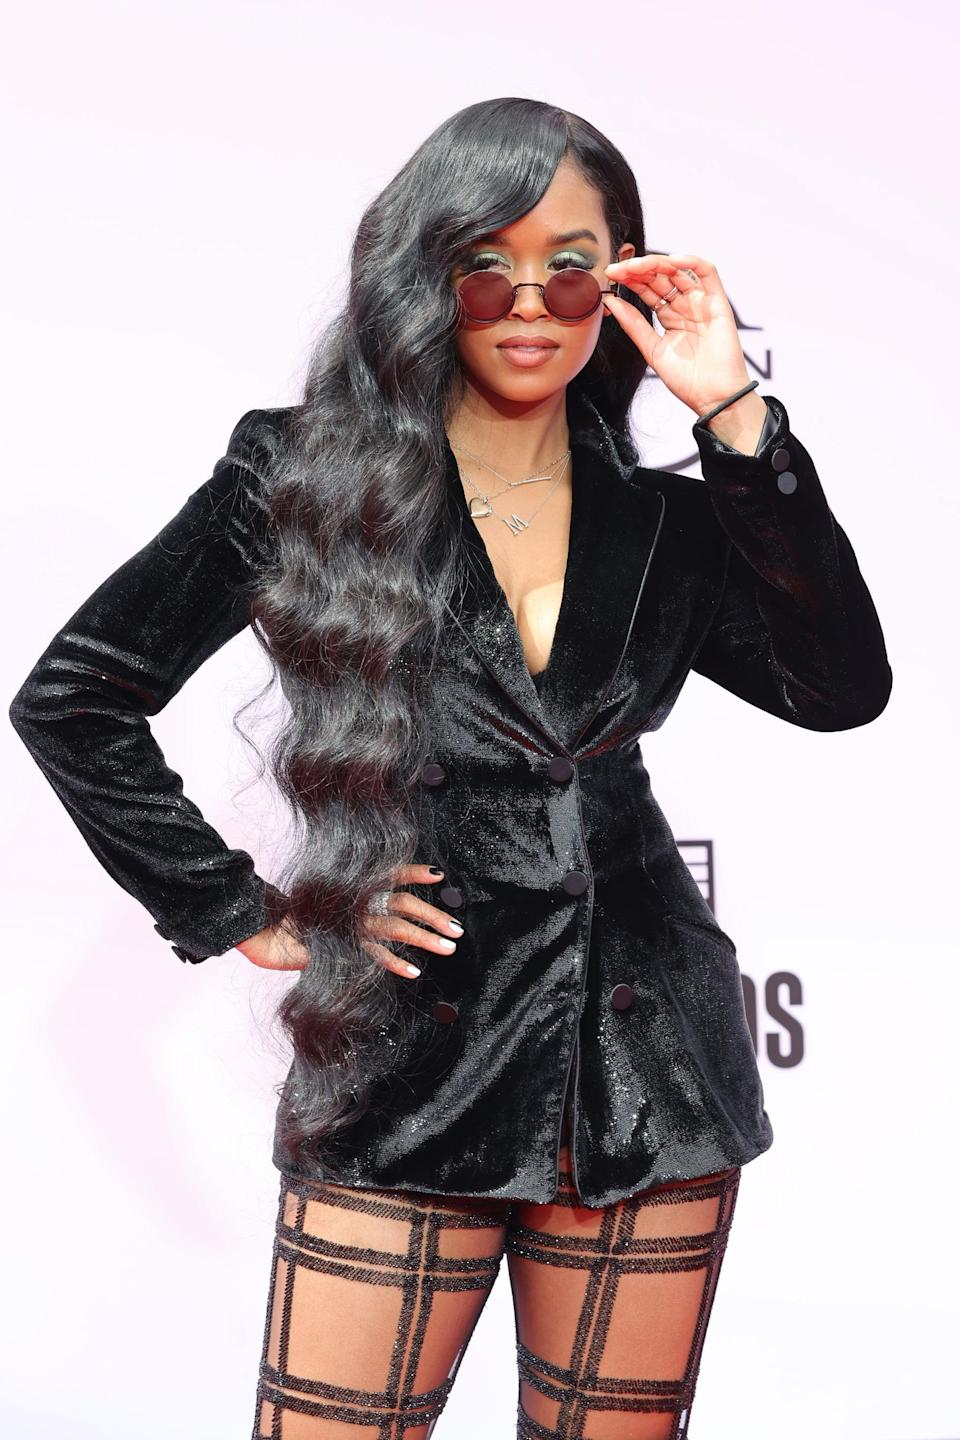 <p>H.E.R. may have gone for a vibrant green eyeshadow, but she kept her manicure subtle with a black and white design.</p>